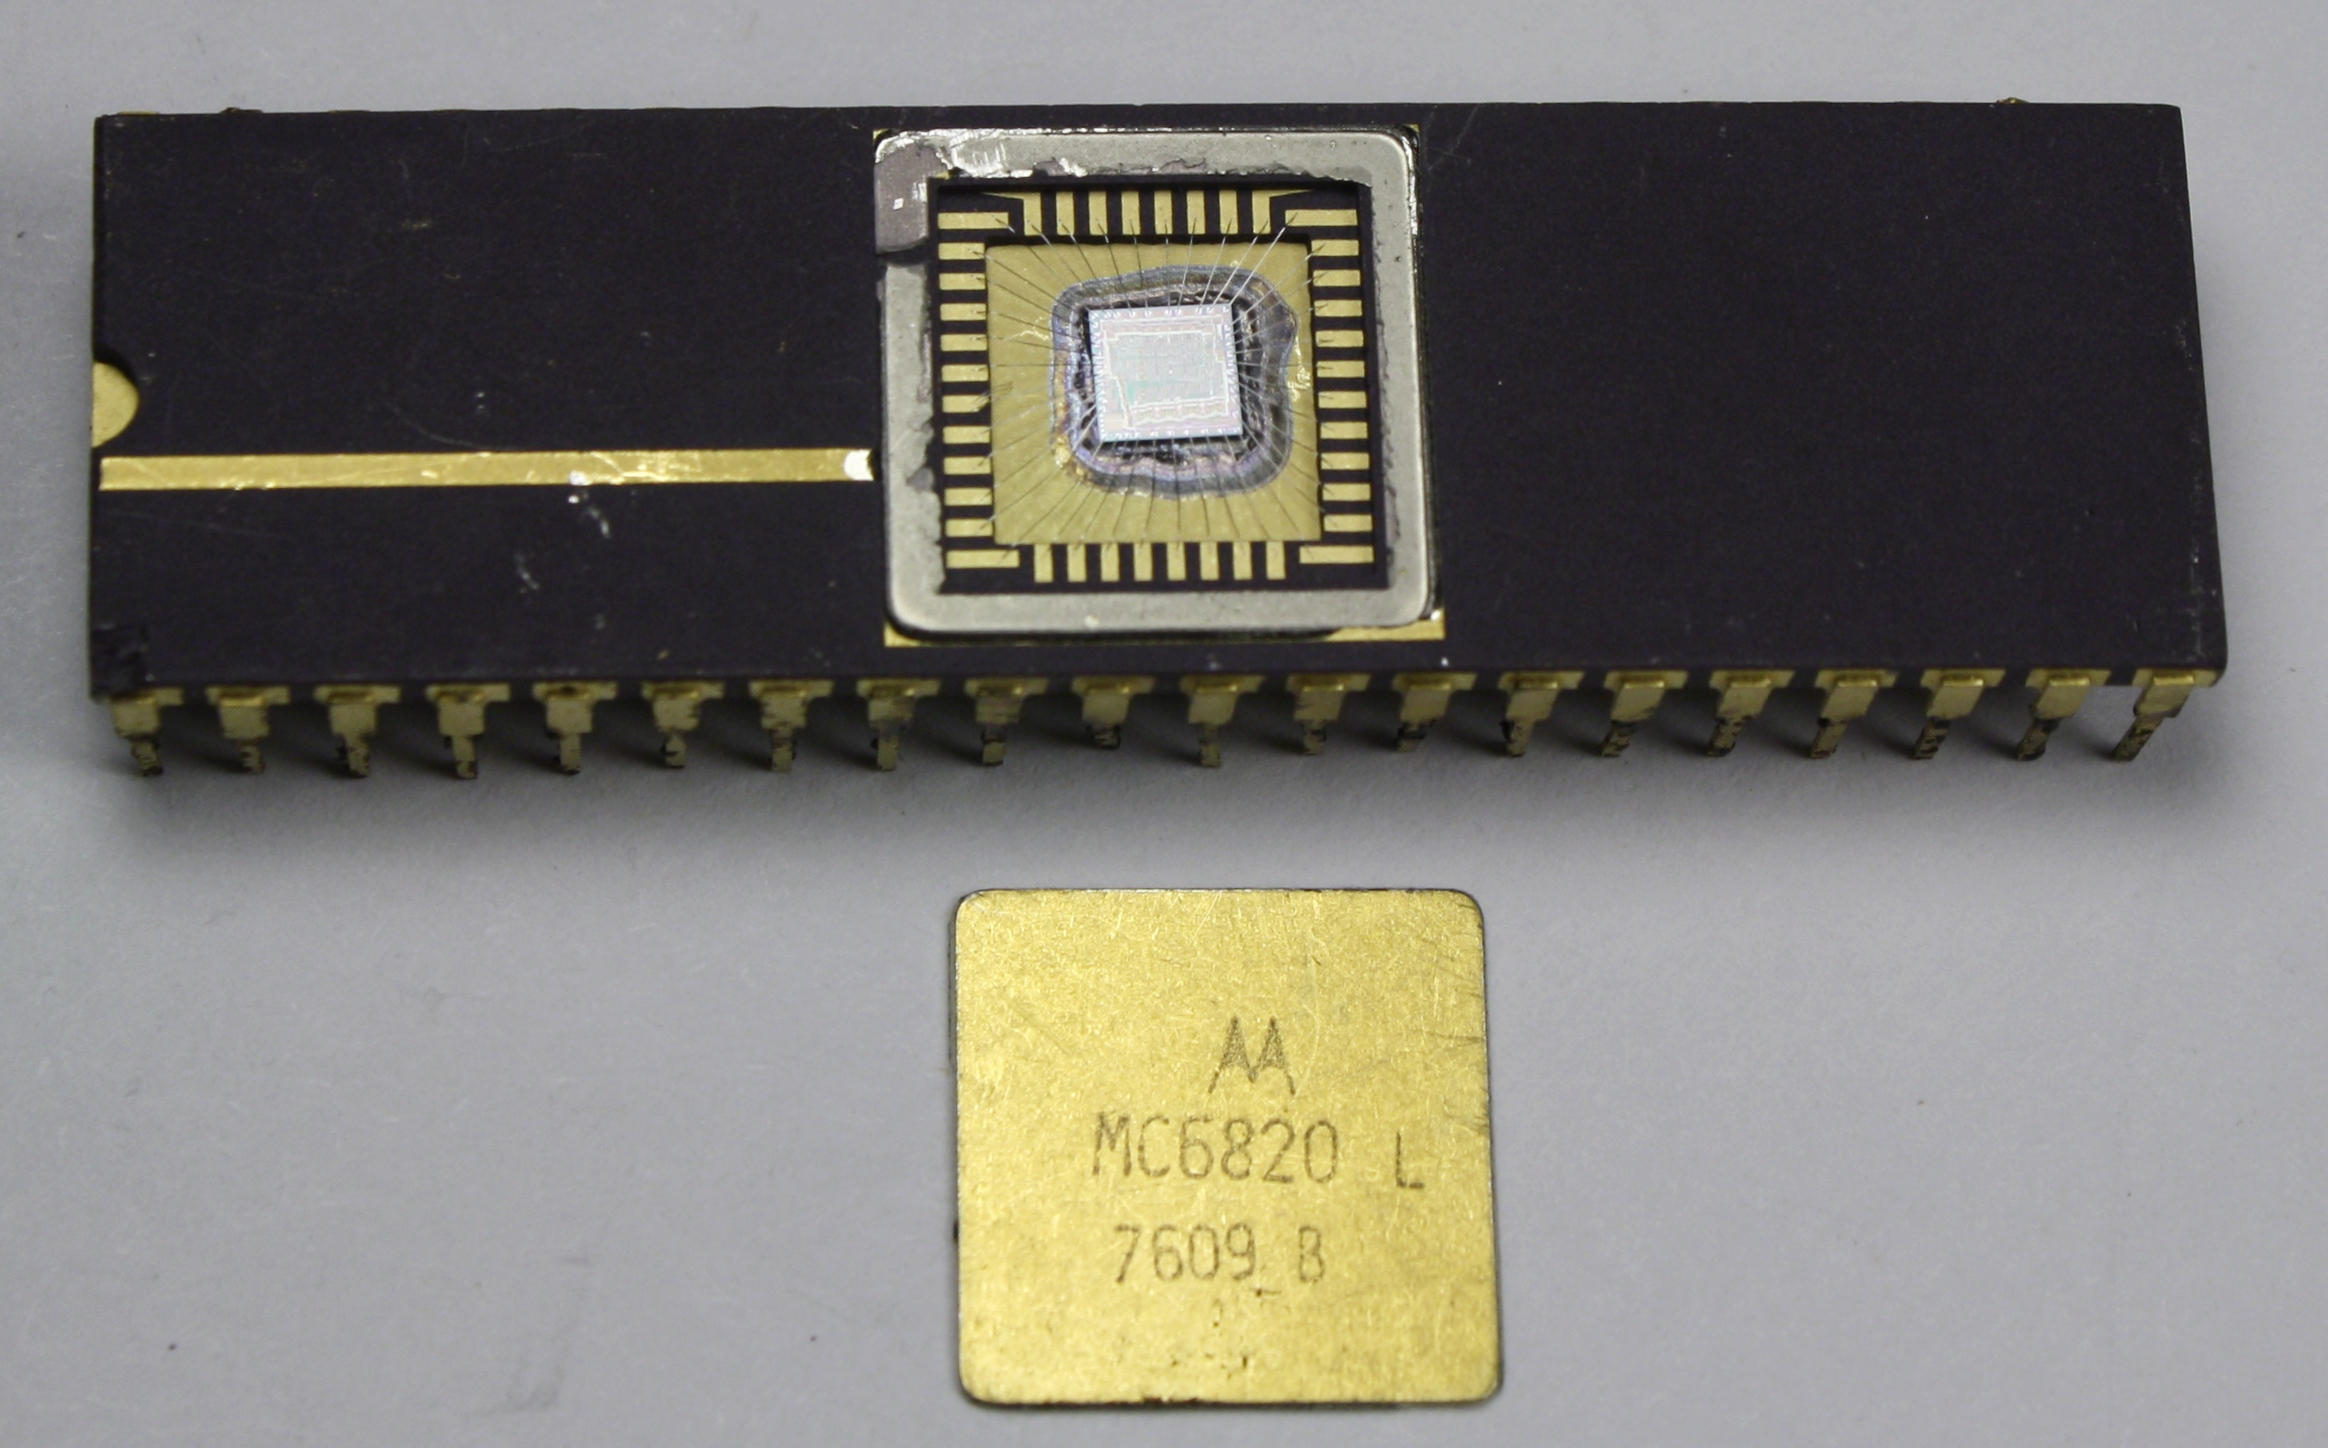 Creating High Resolution Integrated Circuit Die Photos With Hugin Or Ice Circuits 8085 Projects Blog Archive Analog Oscilloscope The Mc6820 Chip Metal Lid Popped Off To Reveal Silicon